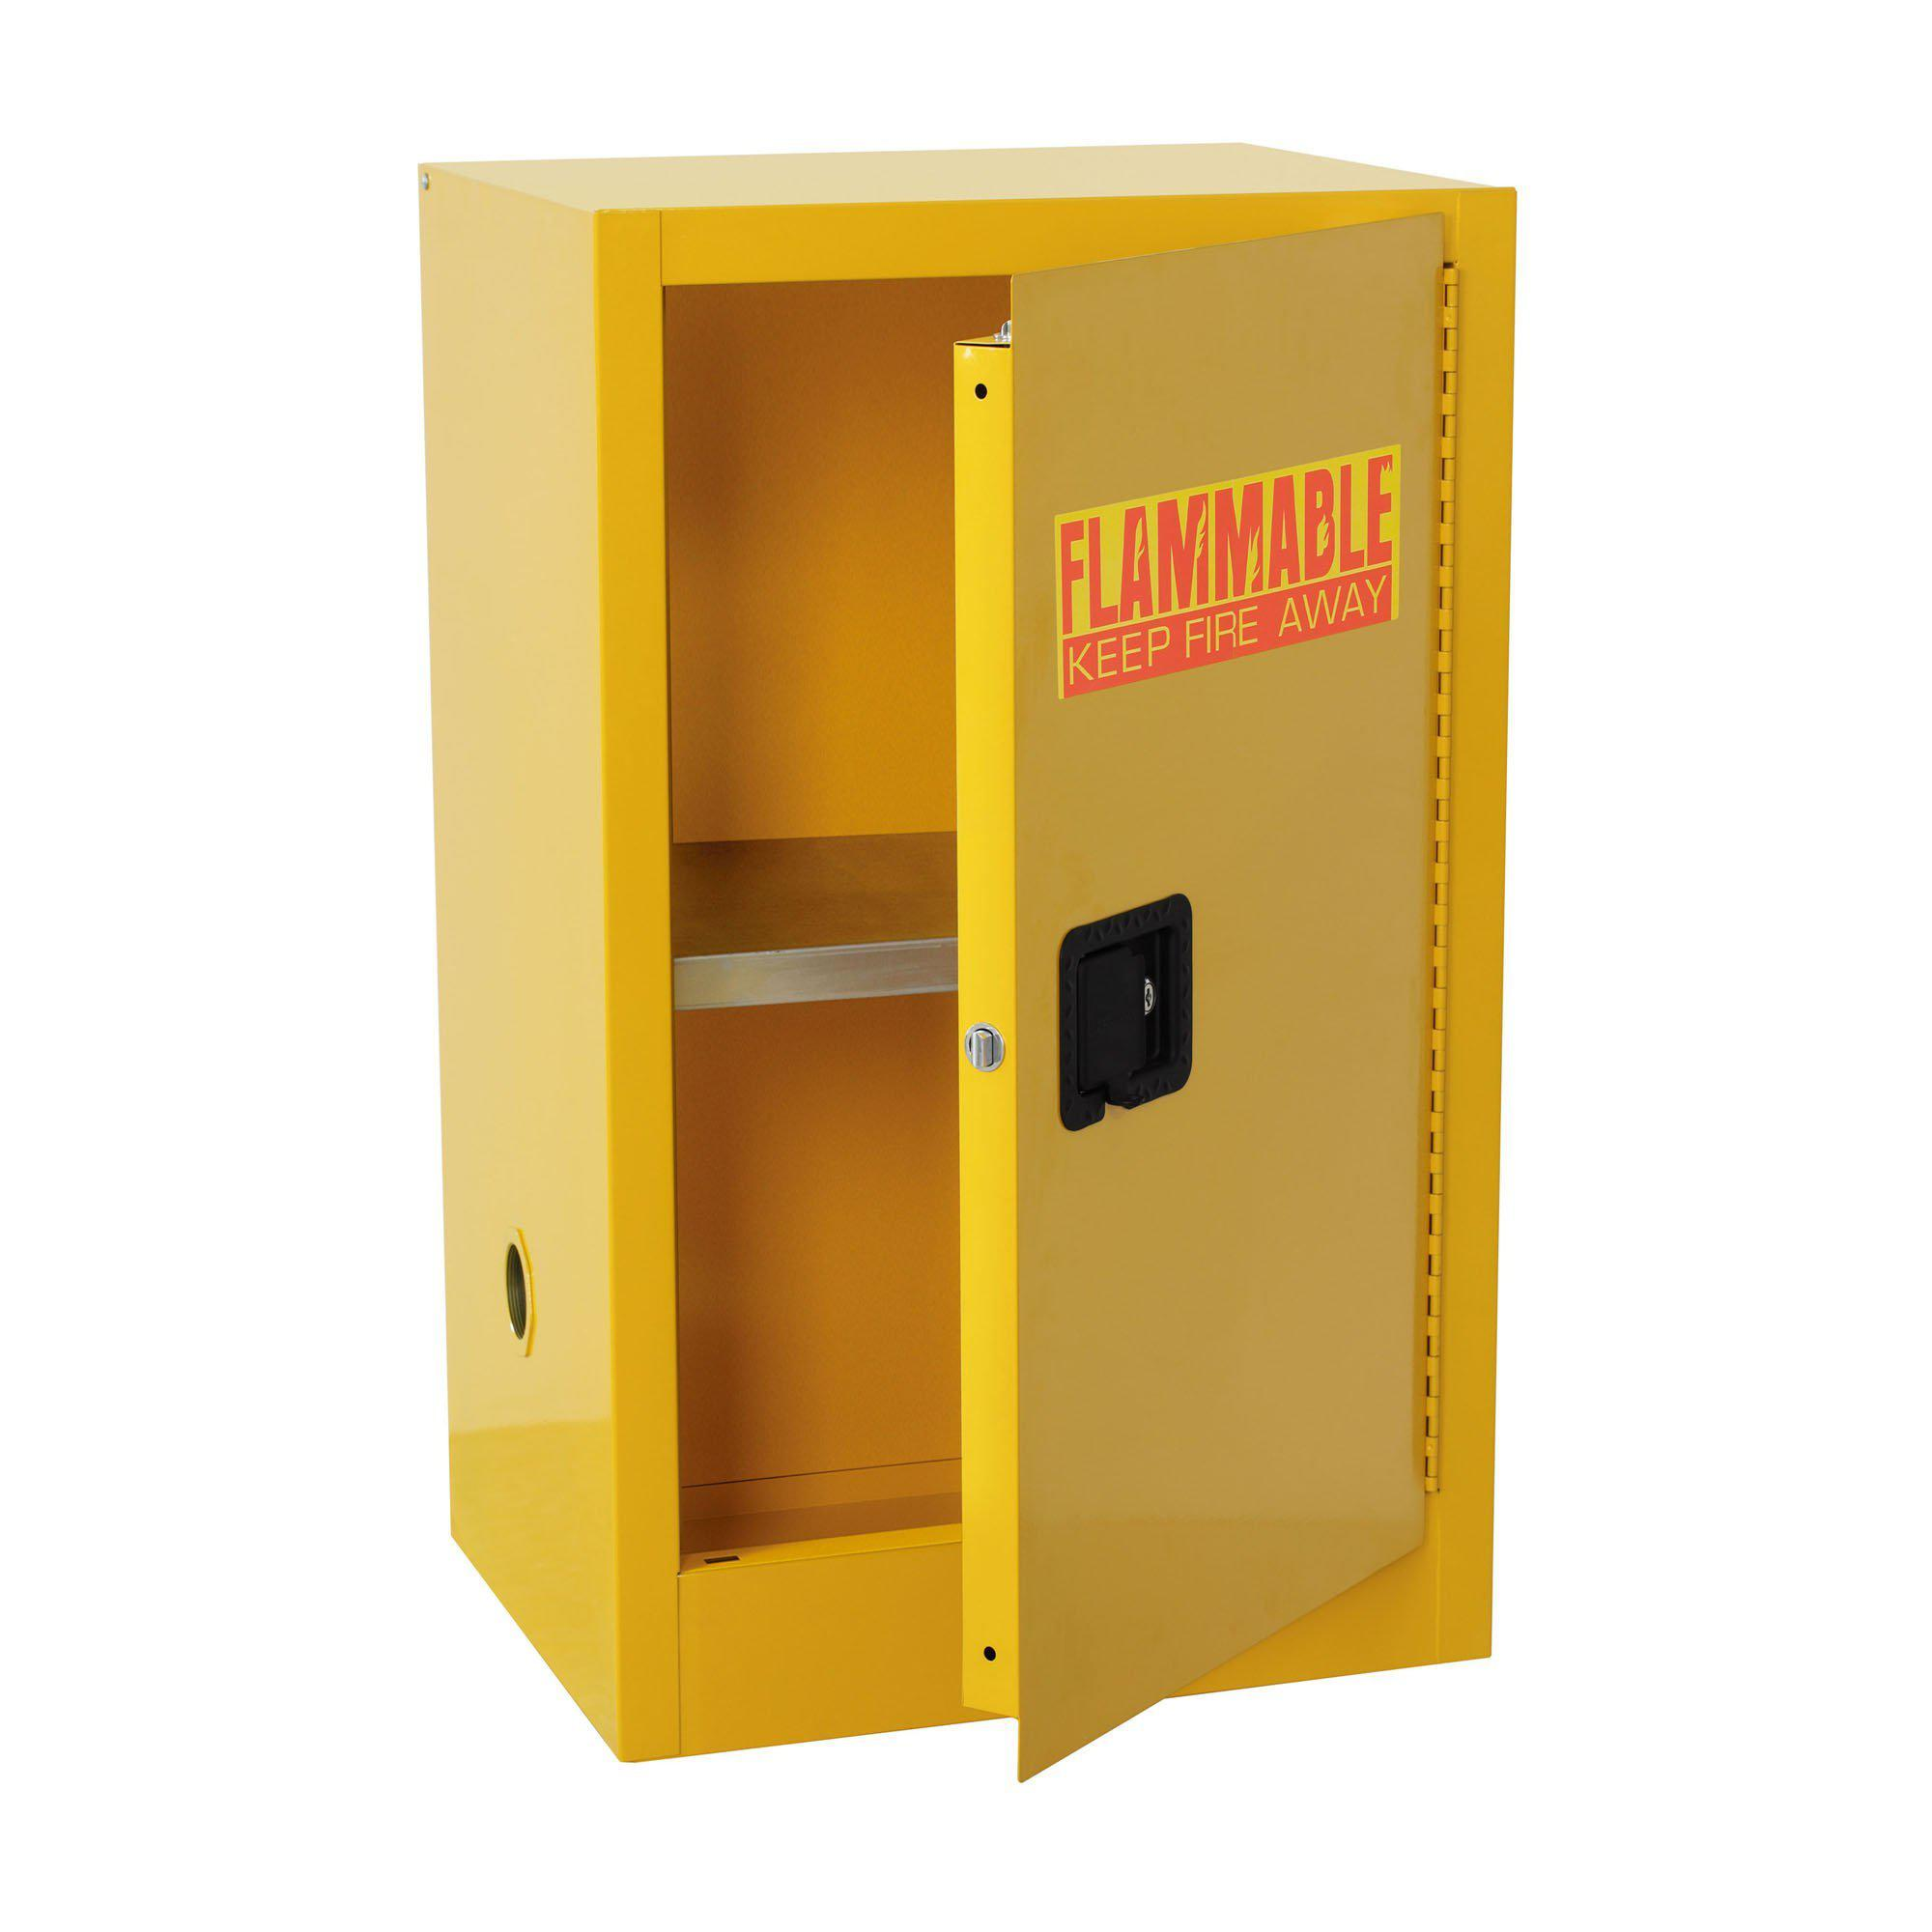 Compact Flammable Safety Cabinet with Single Door, Manual Close, 16 Gallon Capacity, Safety Yellow, 23 x 18 x 44